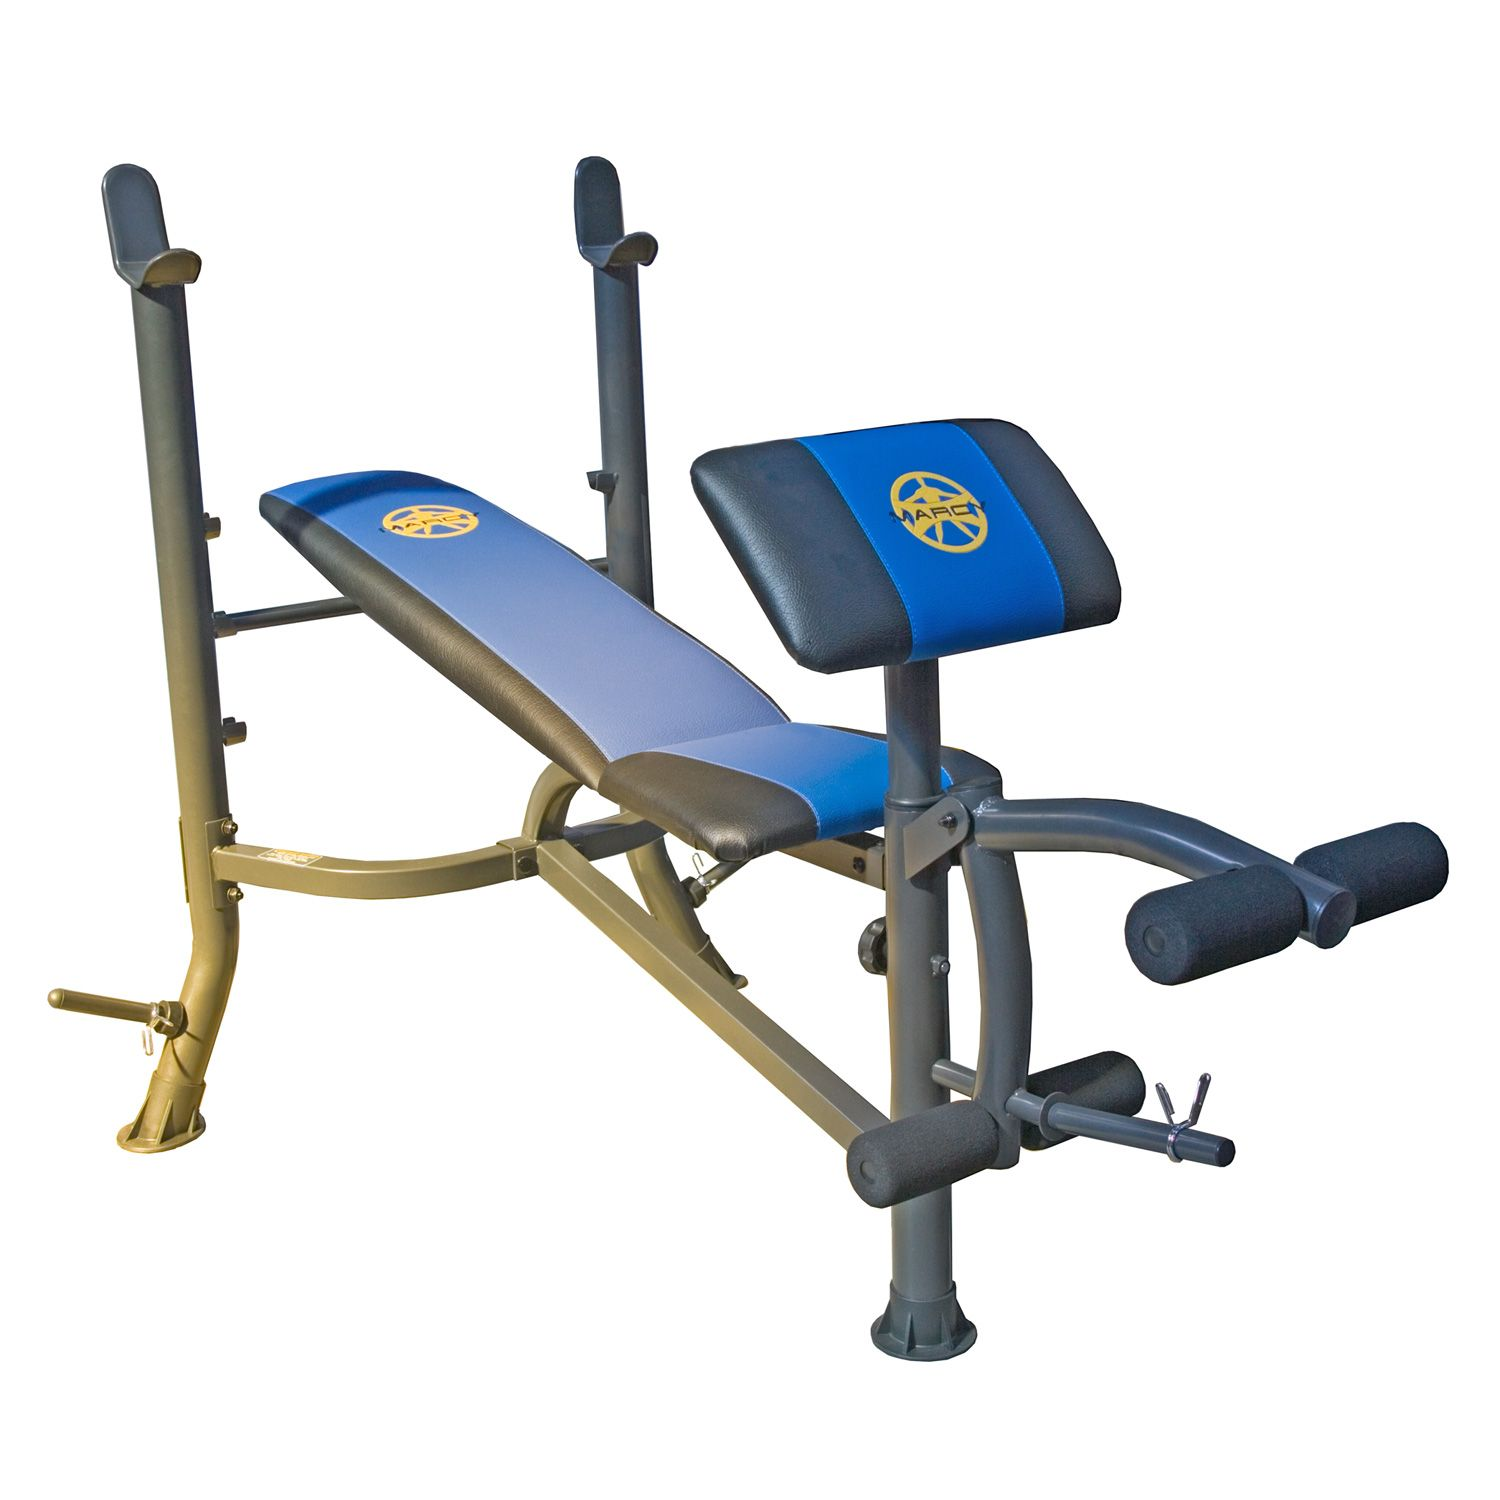 Marcy Wm367 Weight Bench Ebay